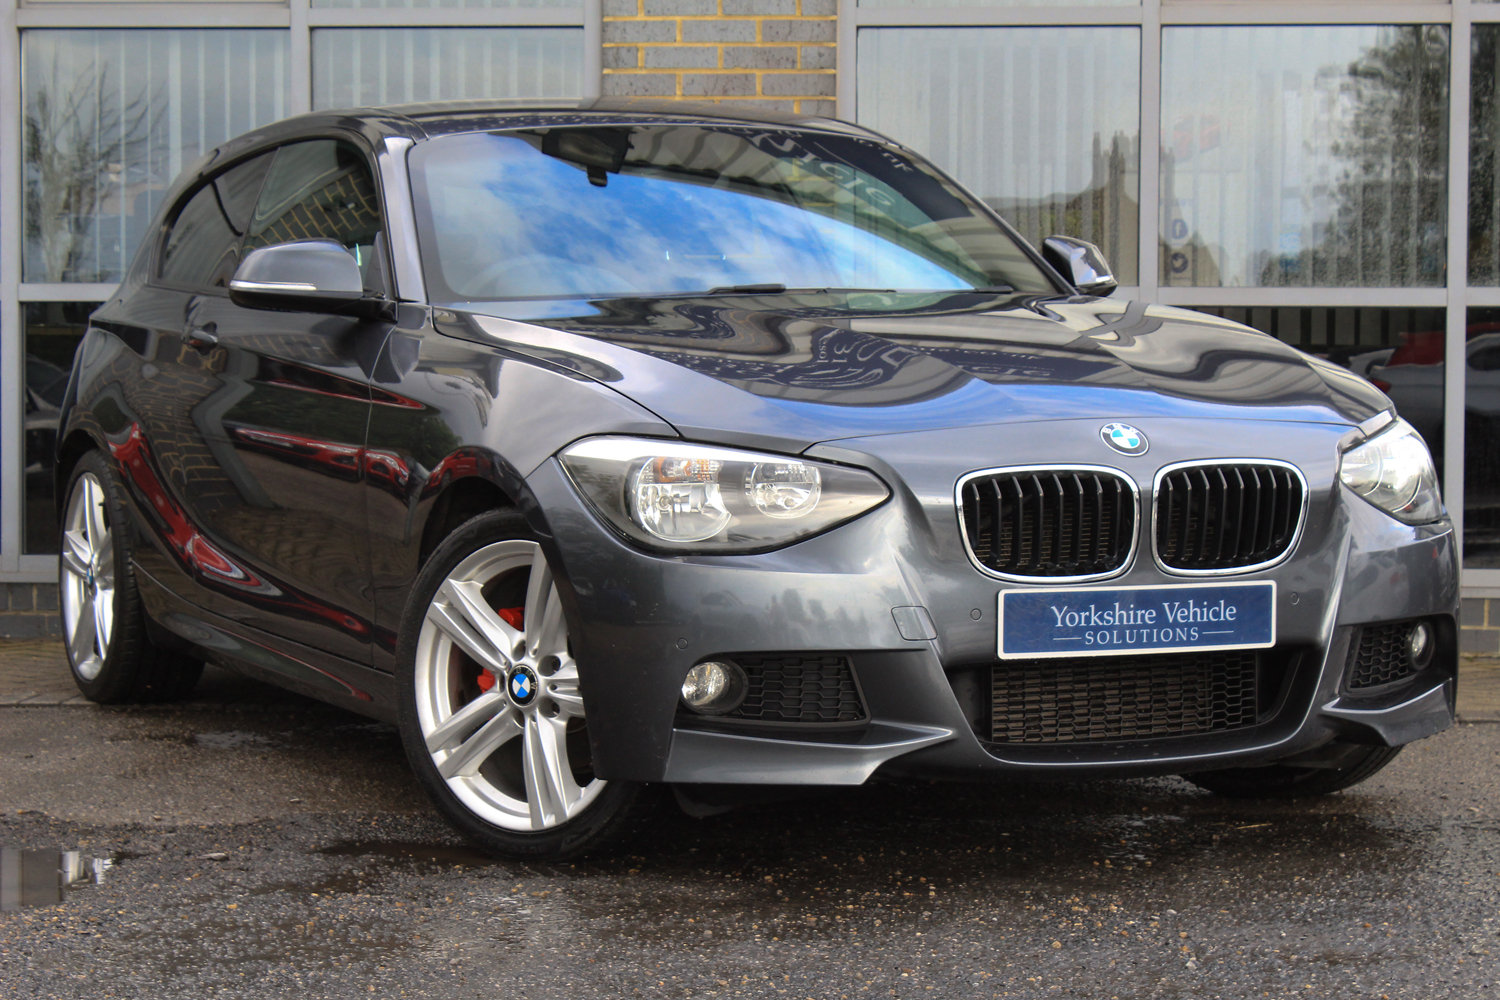 2013 BMW 1 SERIES 120D M SPORT  For Sale (picture 1 of 6)